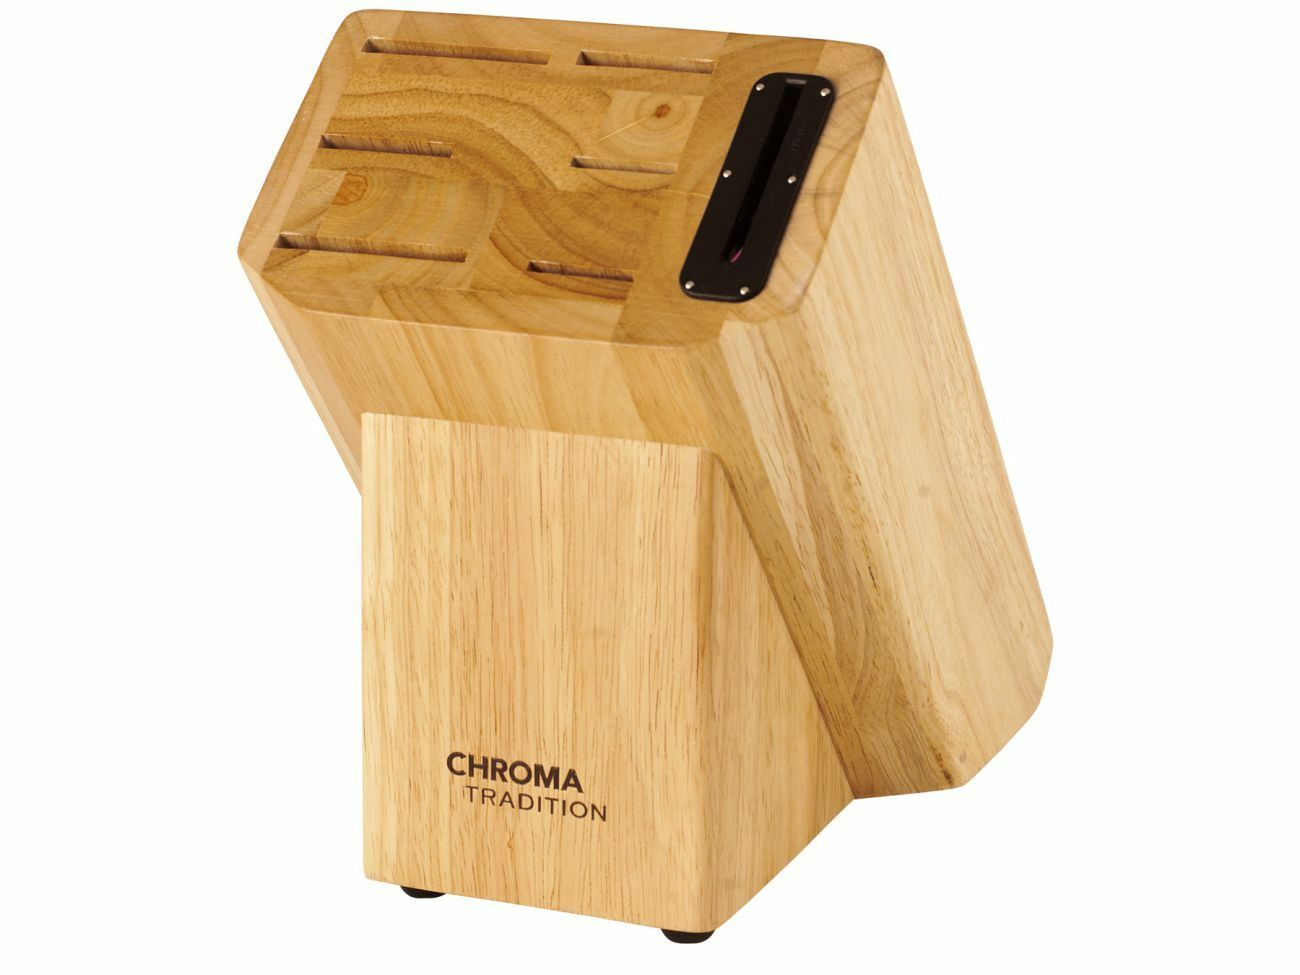 Chroma Tradition t20s couteau Bloc